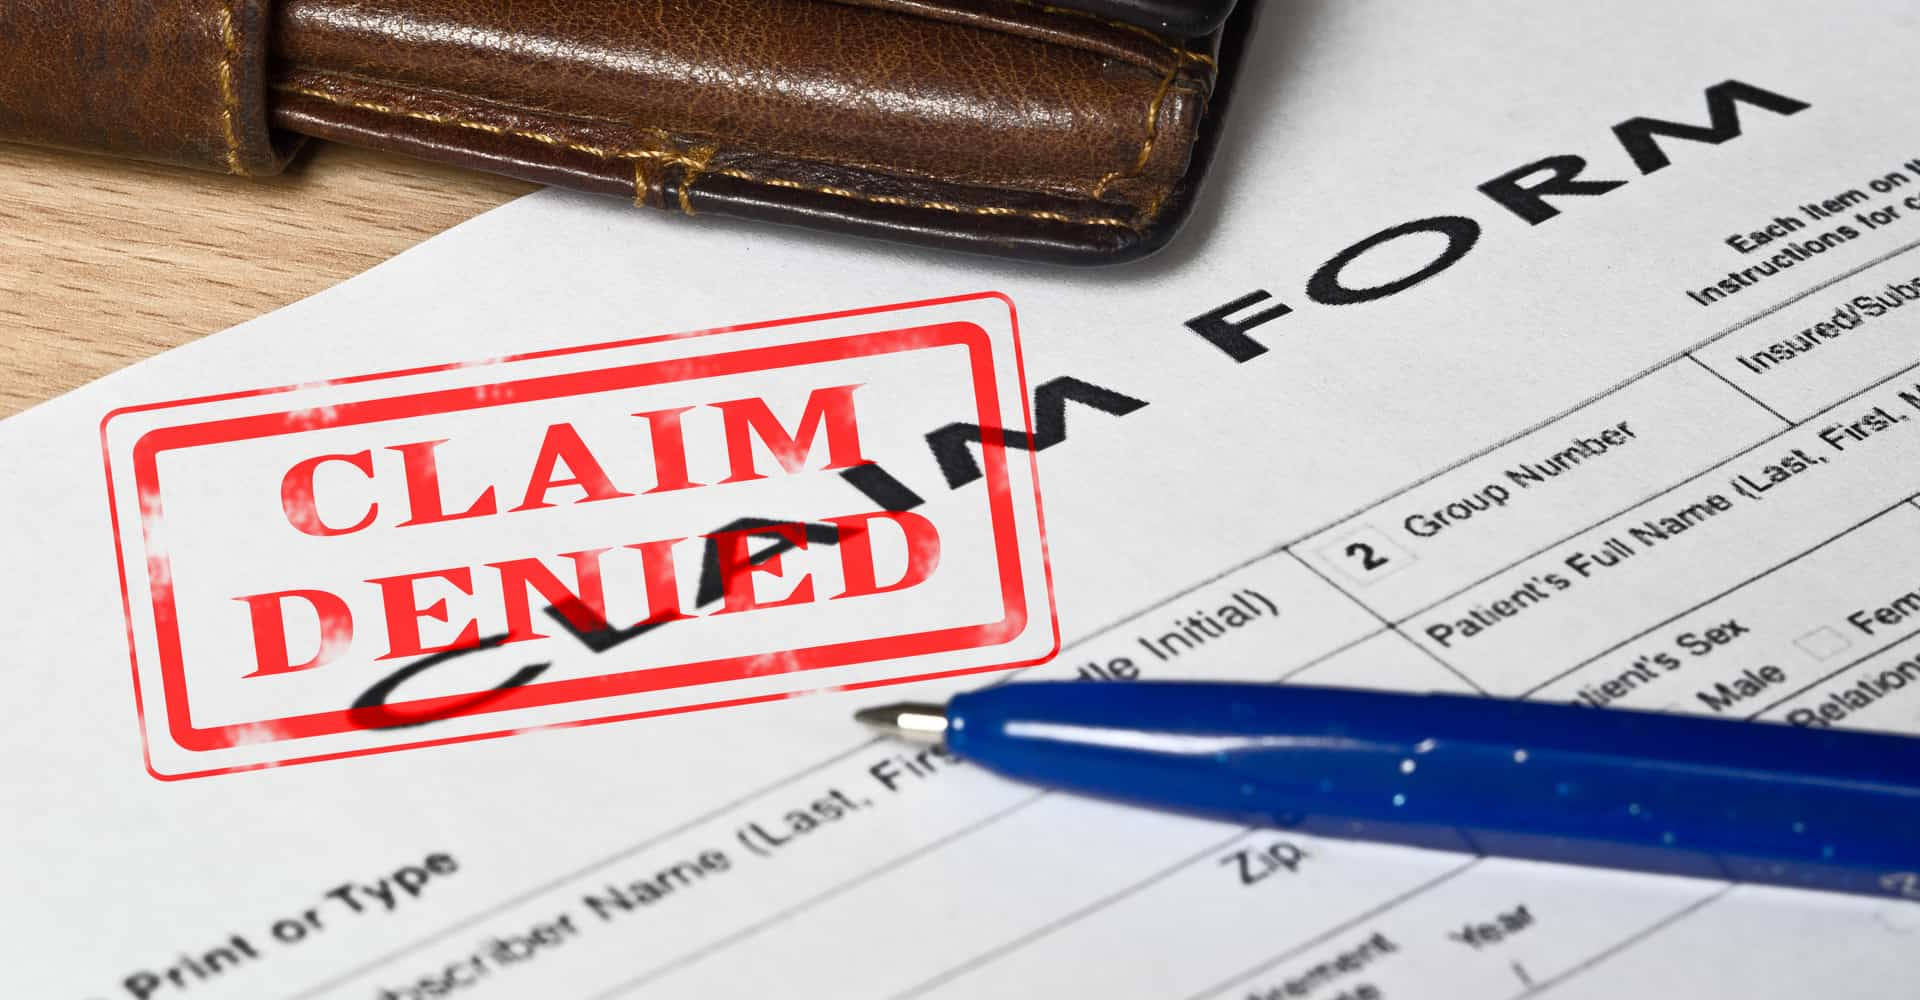 AARP Life Insurance Claim Denied Due to Lapse - What To Do